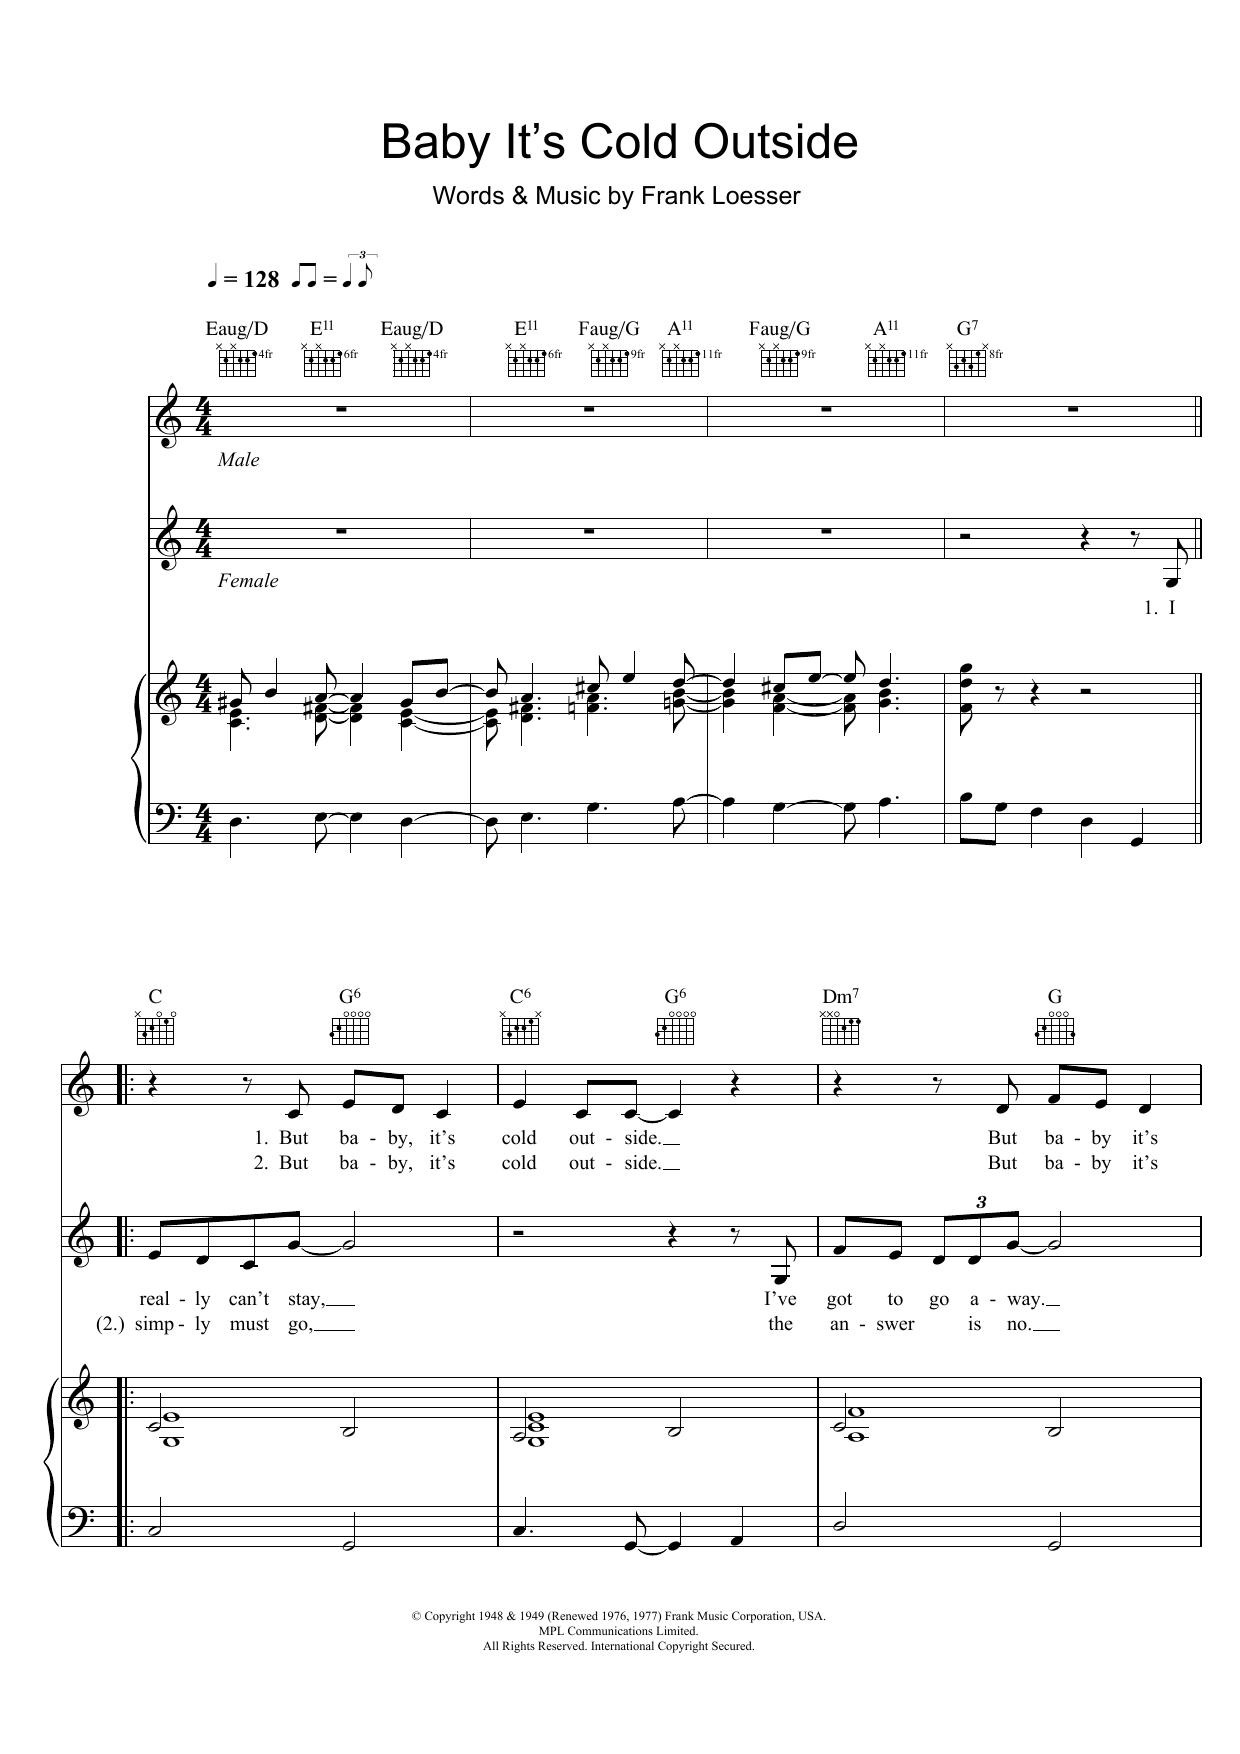 Baby, It's Cold Outside by Tom Jones & Cerys Matthews Alto Saxophone Solo  Digital Sheet Music